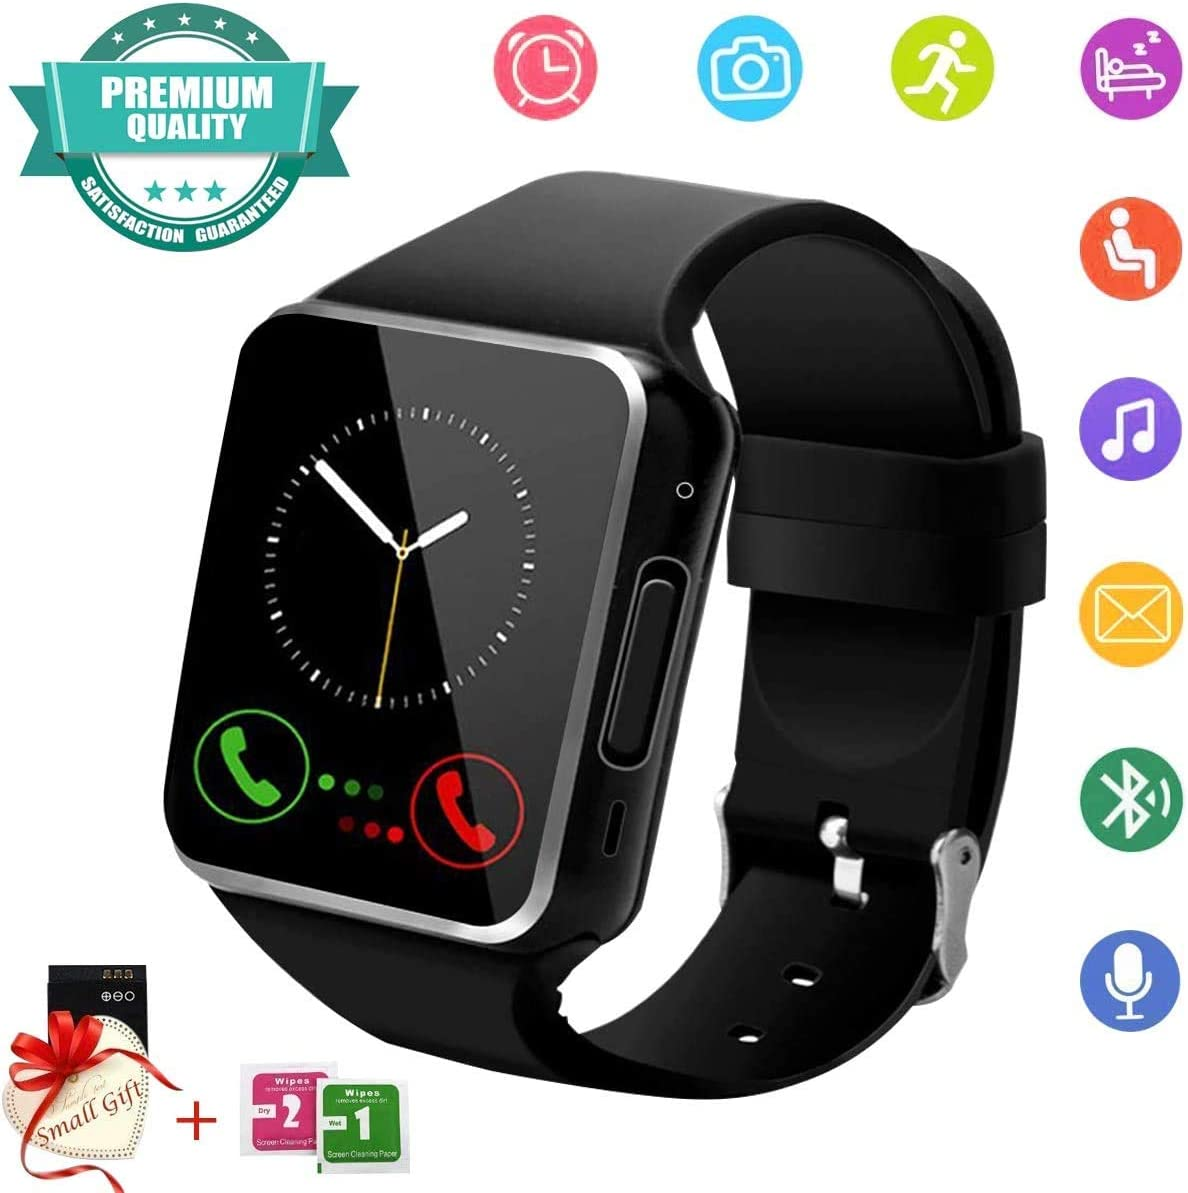 Smart Watch,Smart Watch for Android Phones, Smart Watches with Camera Bluetooth Watch Phone with SIM Card Slot Watch Cell Phone Smartwatch for Android Samsung Huawei Phone iOS XS X8 10 11 Men Women